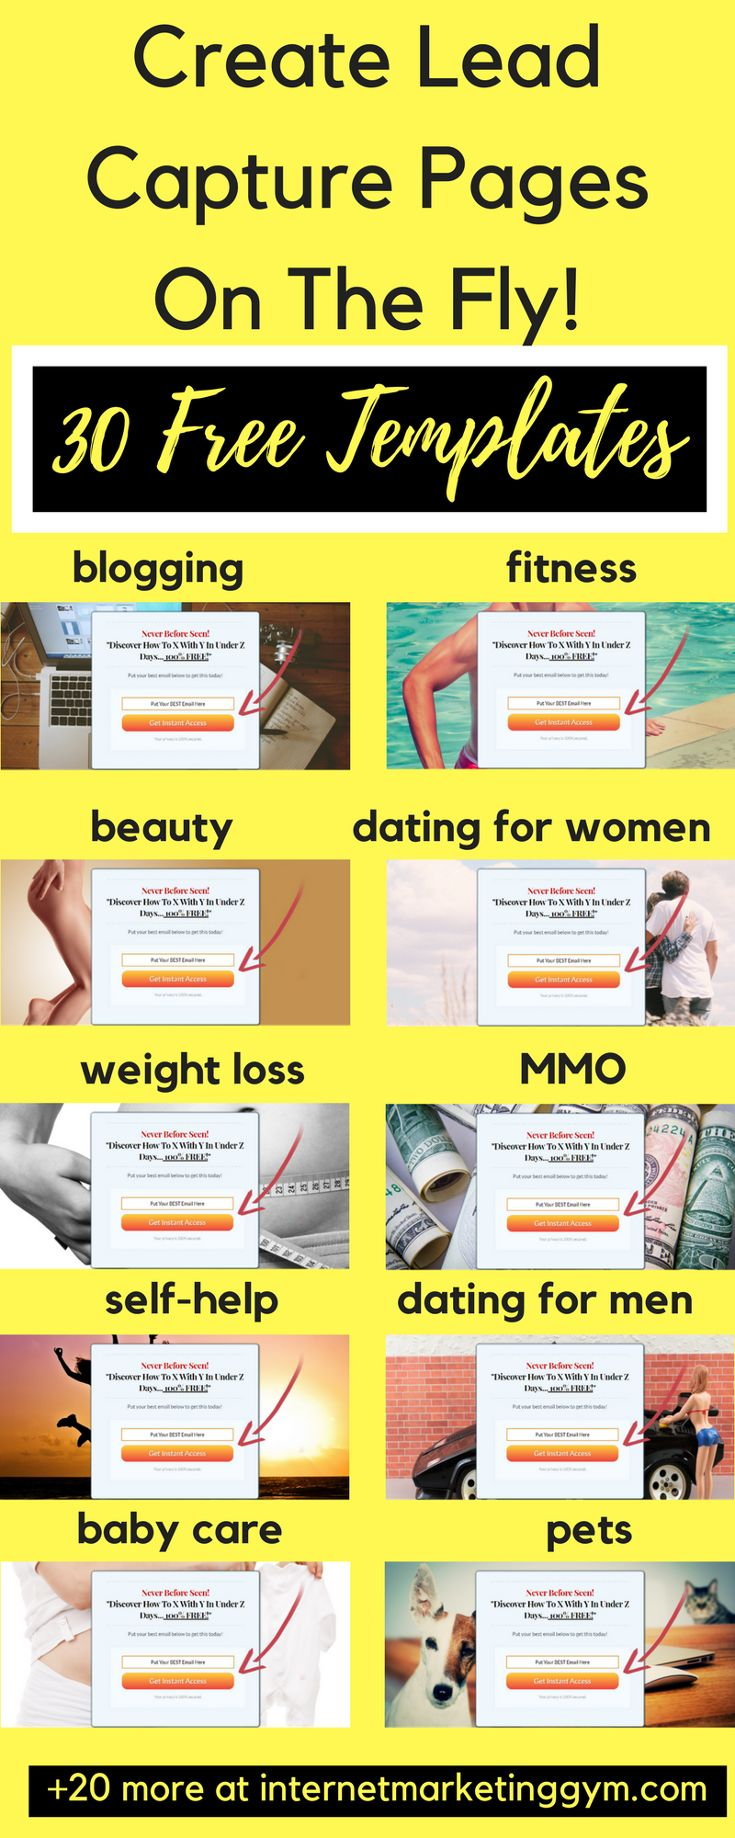 5685 best e commerce images on pinterest inbound marketing create a lead capture form quickly and easily with these lead capture page templates the falaconquin